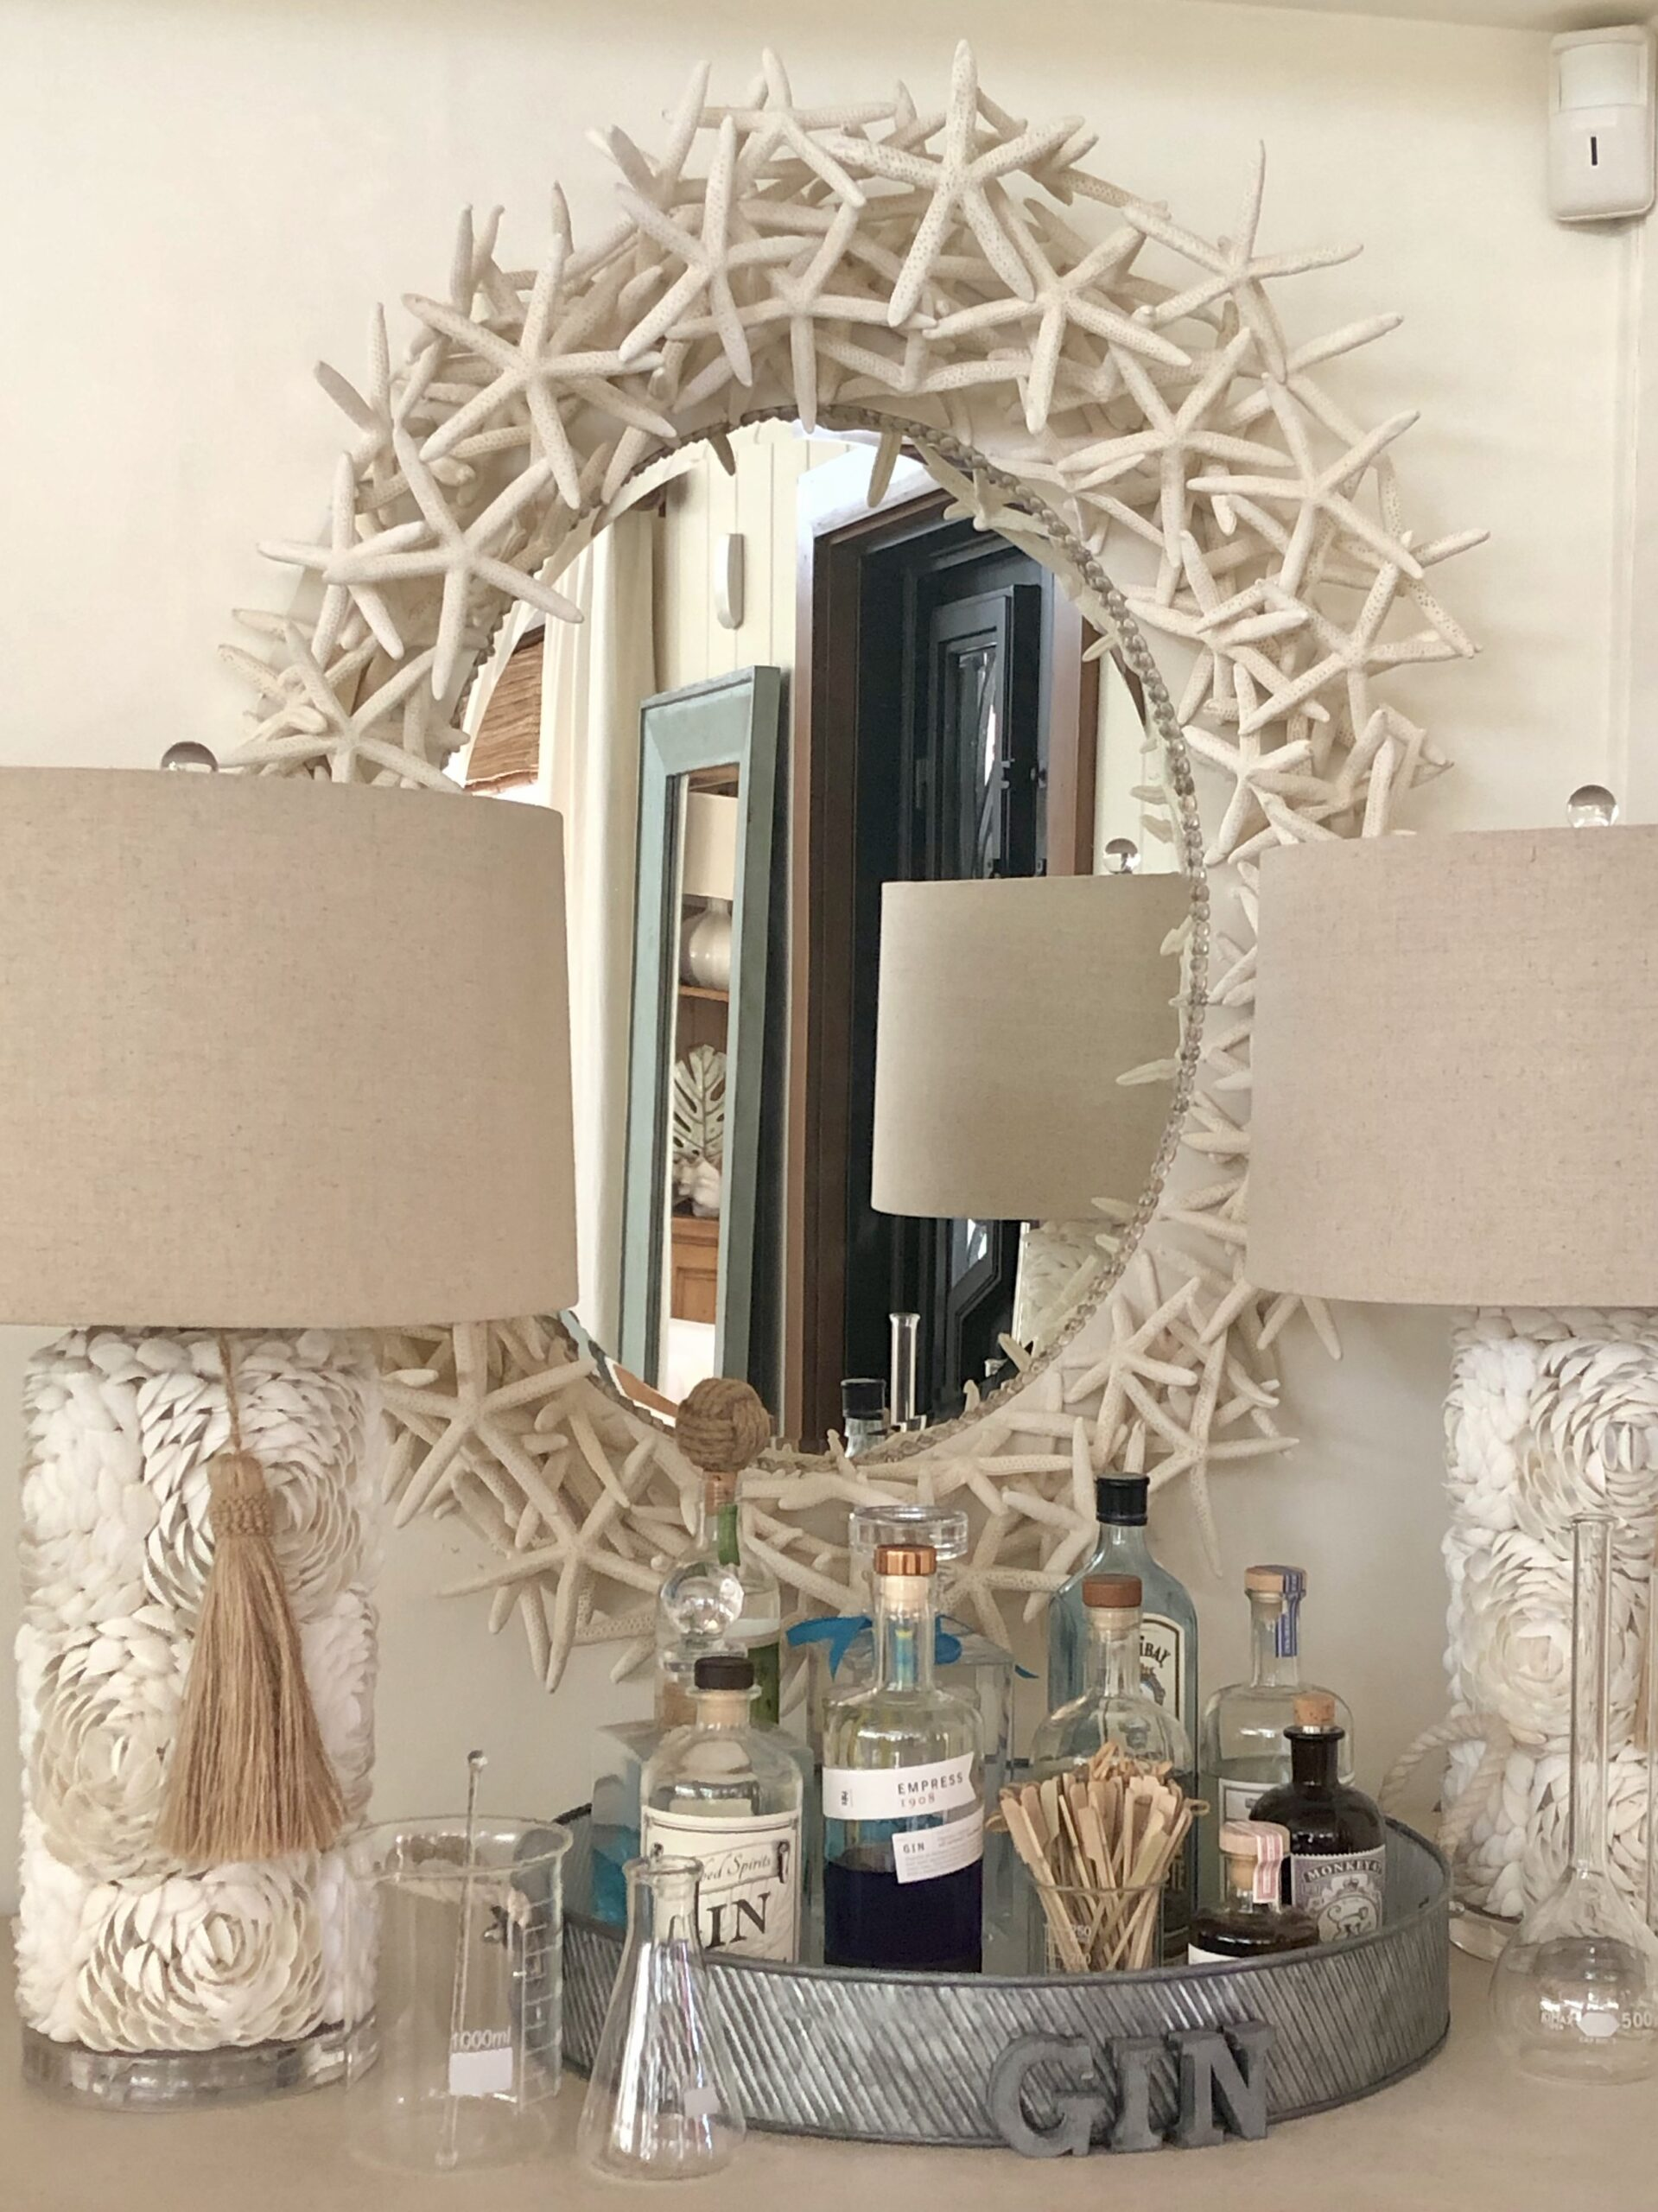 Pair of white lamps in front of a mirror made with starfish.